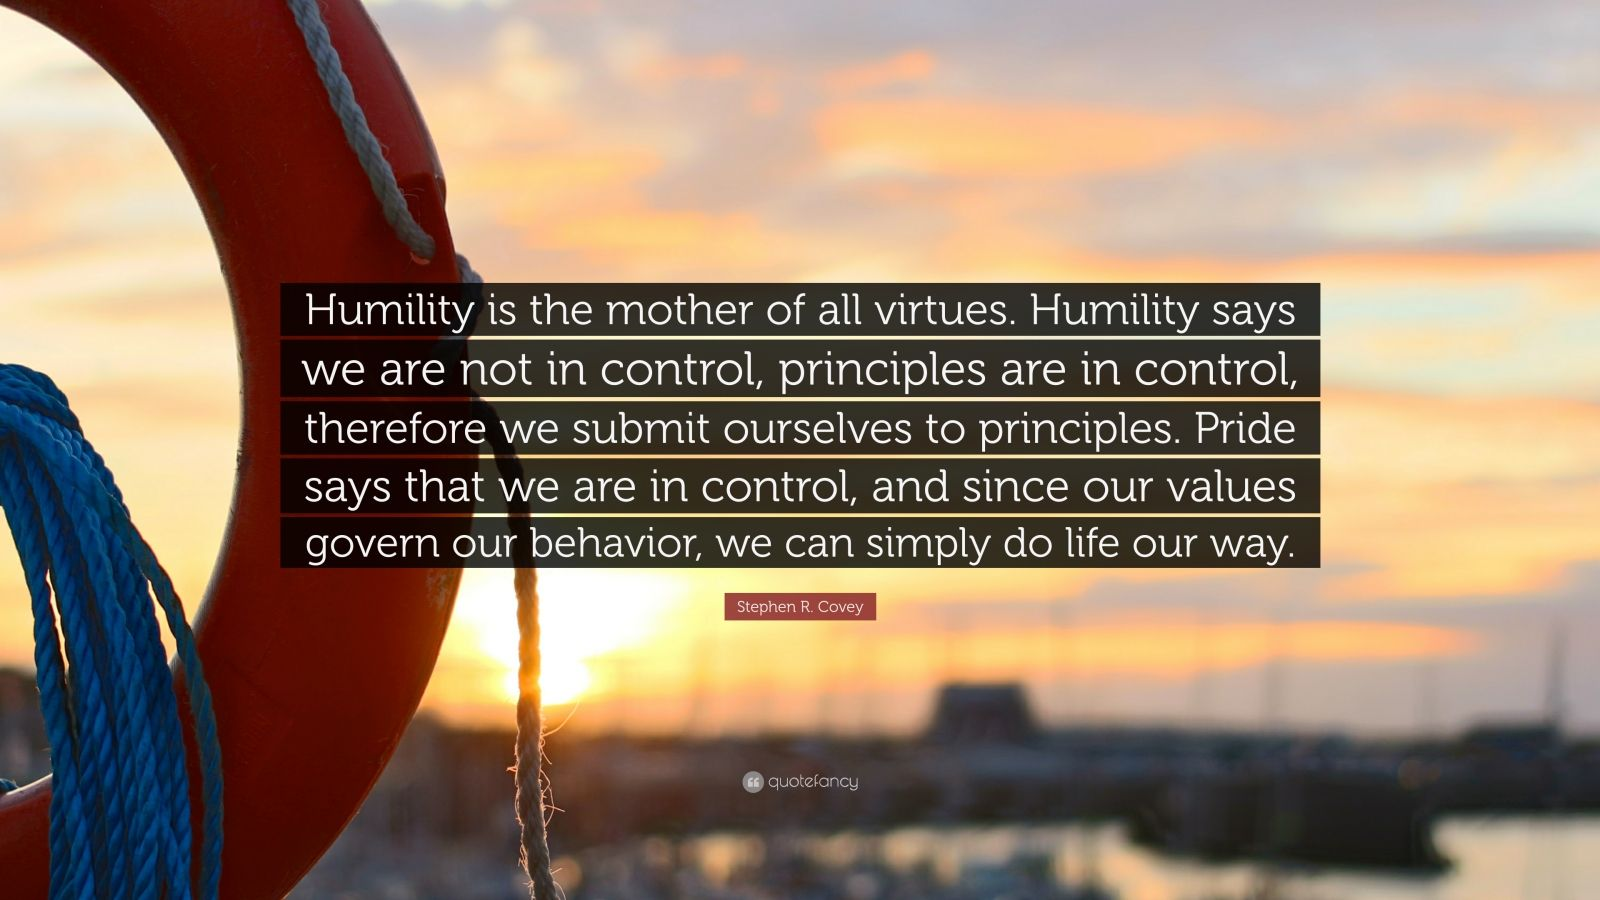 essay on humility is the mother of all virtues